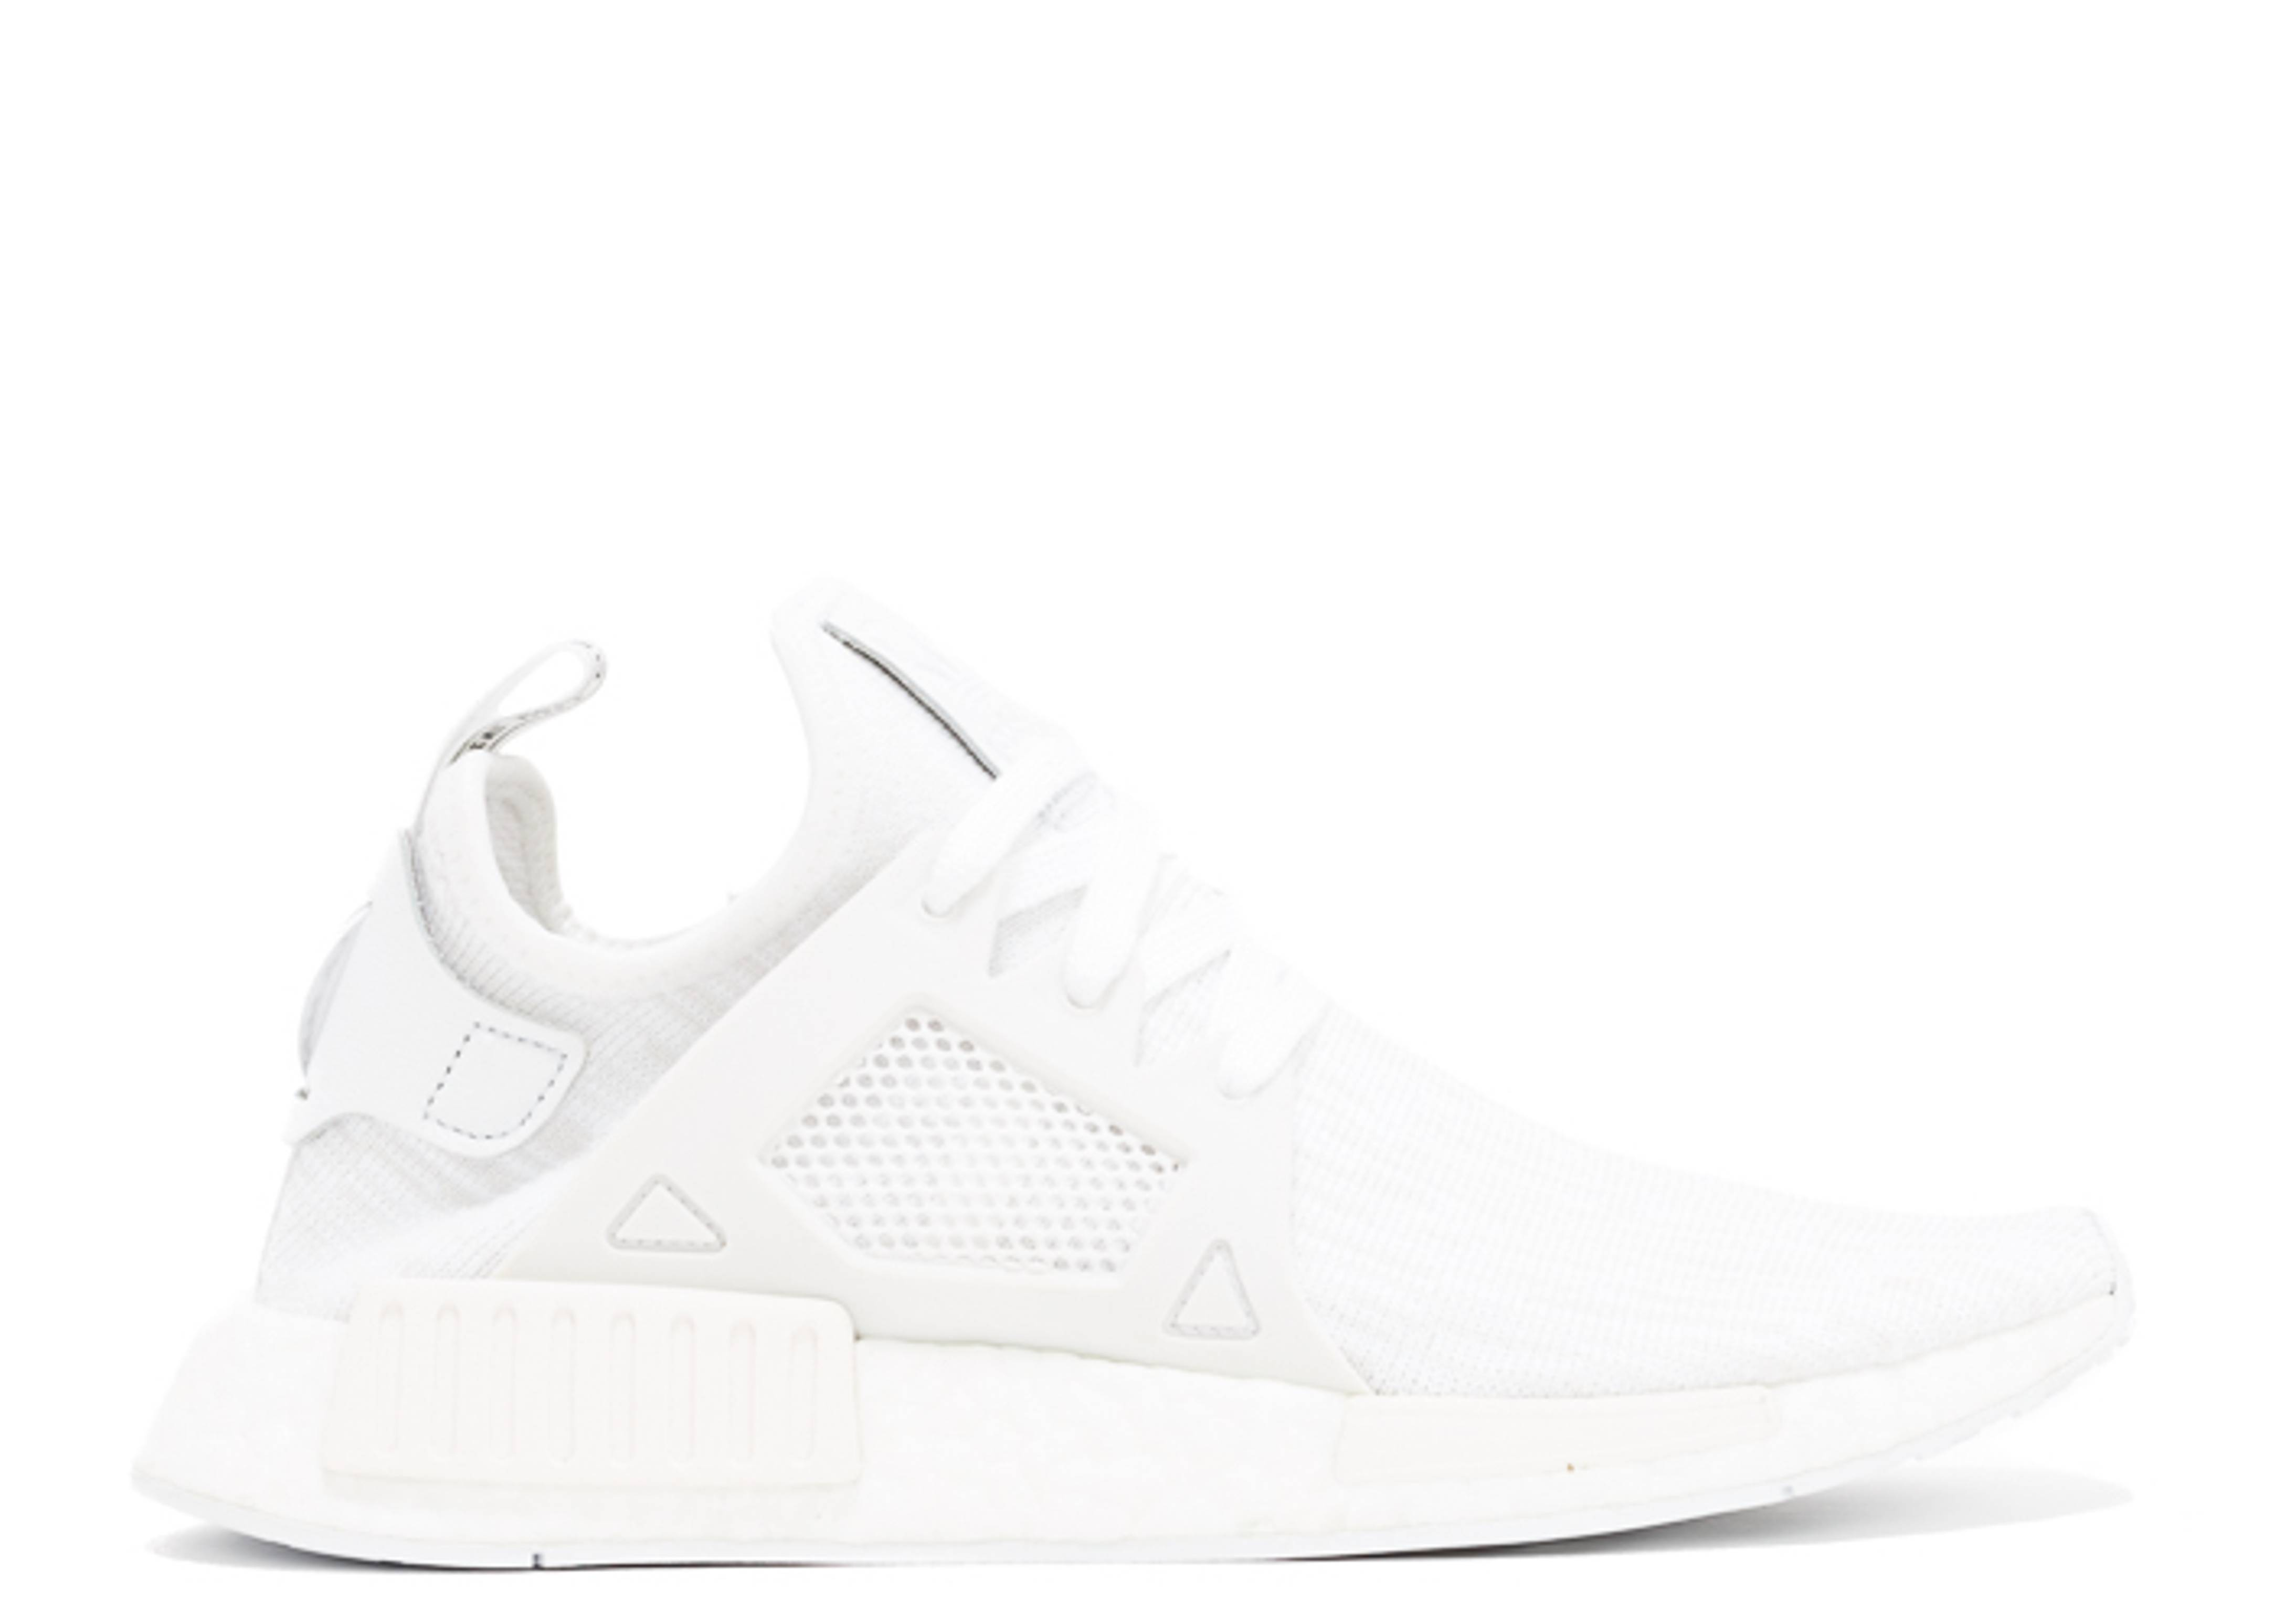 Adidas NMD_XR1 PK (Black, Solid Grey & White) END.